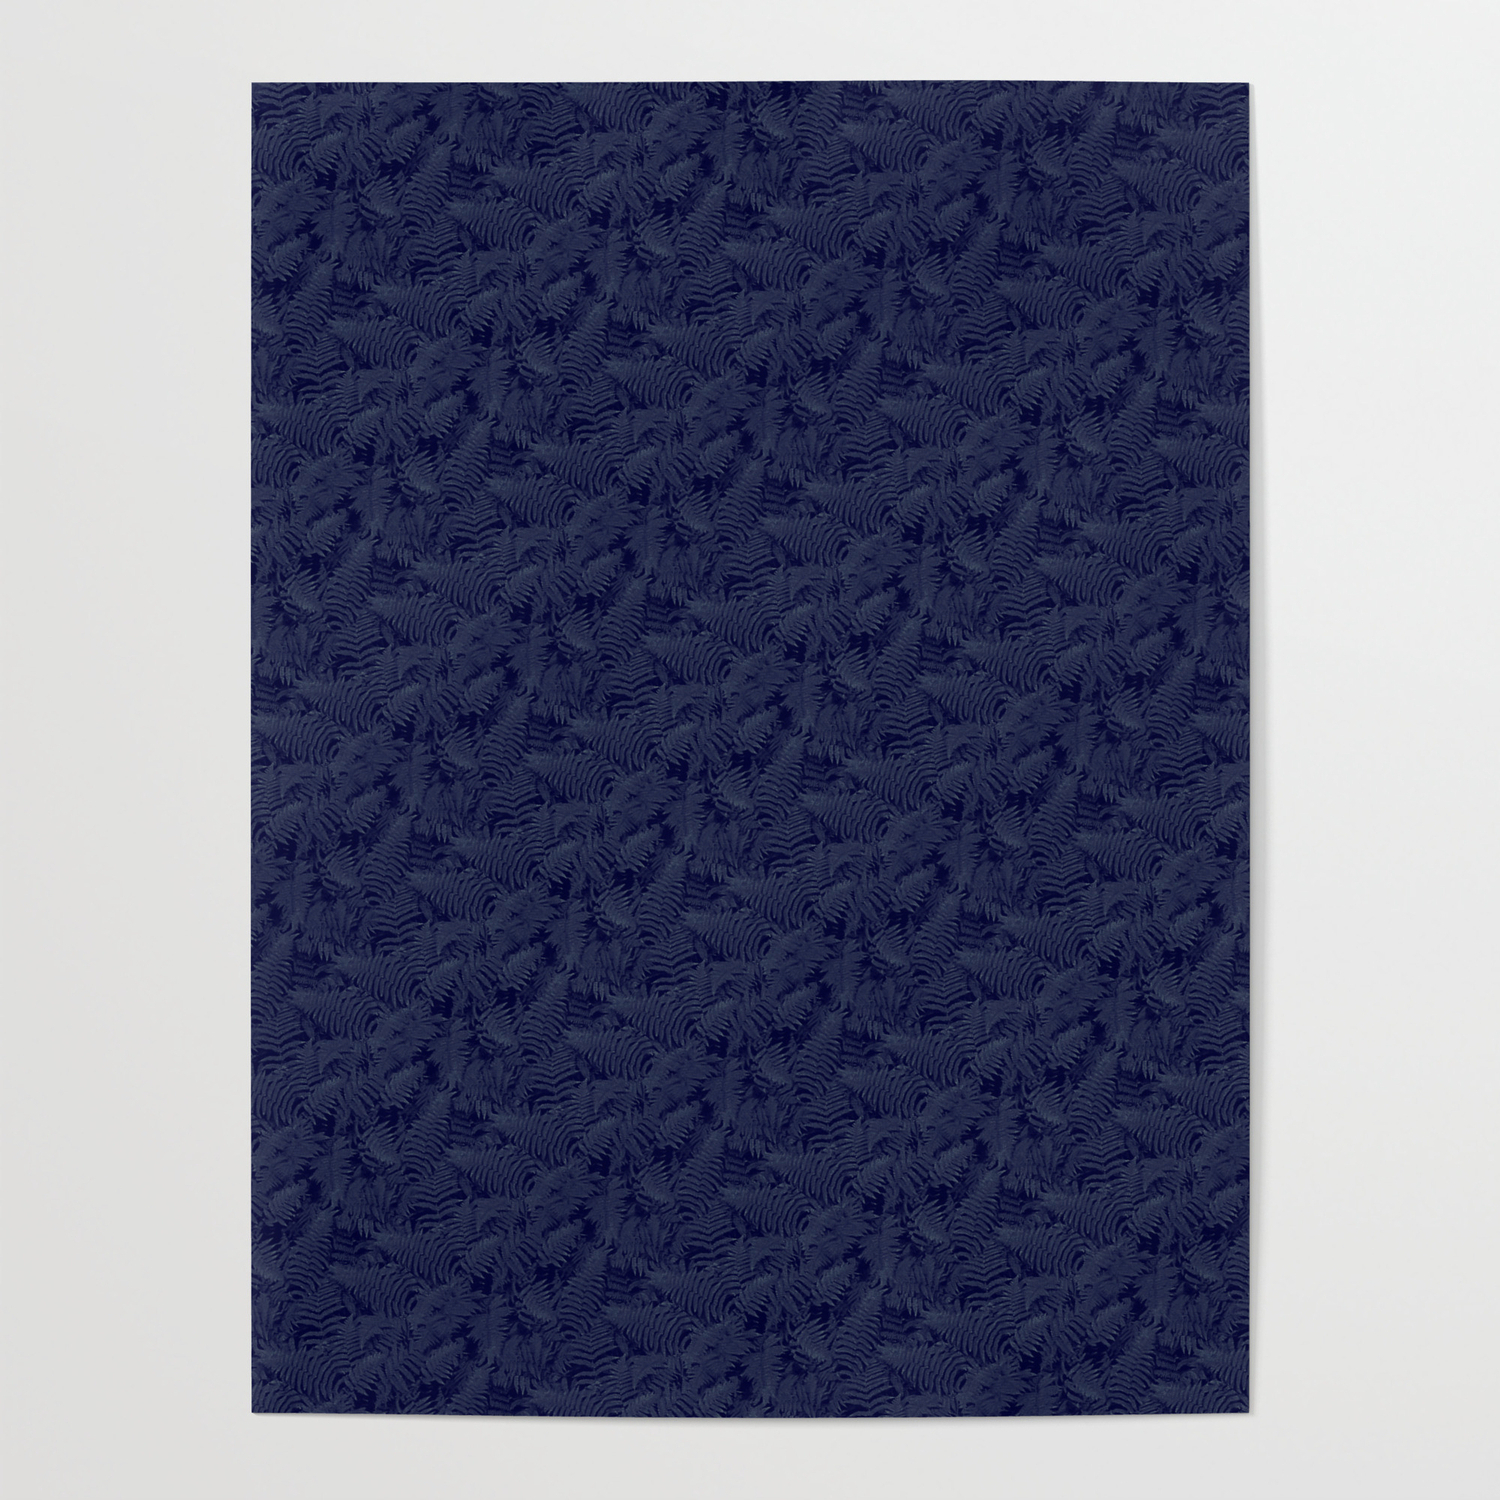 Muted '90S Fern Background Grid At Dusk – Deep Blue Posterwilliambottini With Regard To Deep Blue Fern Credenzas (View 15 of 20)